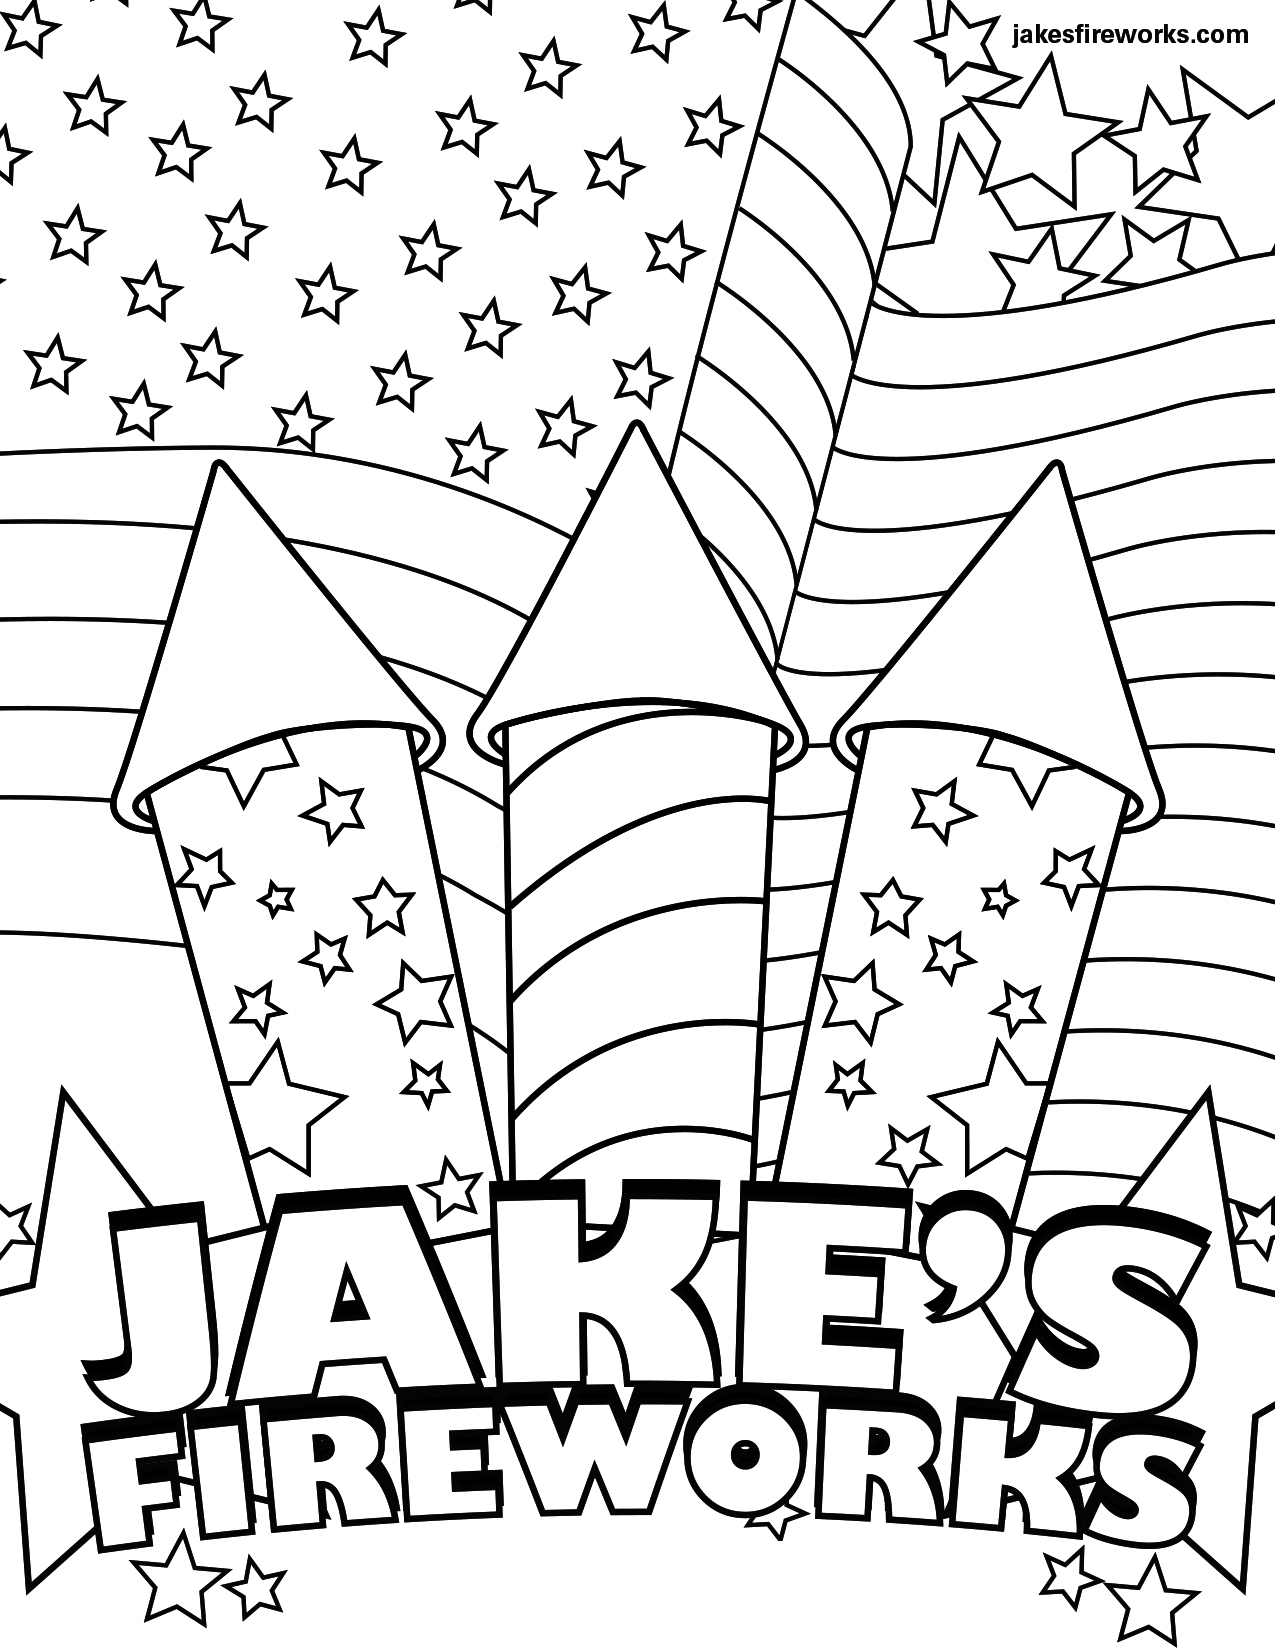 coloring page of fireworks amazing 4th of july fireworks coloring page amazing 4th page of fireworks coloring